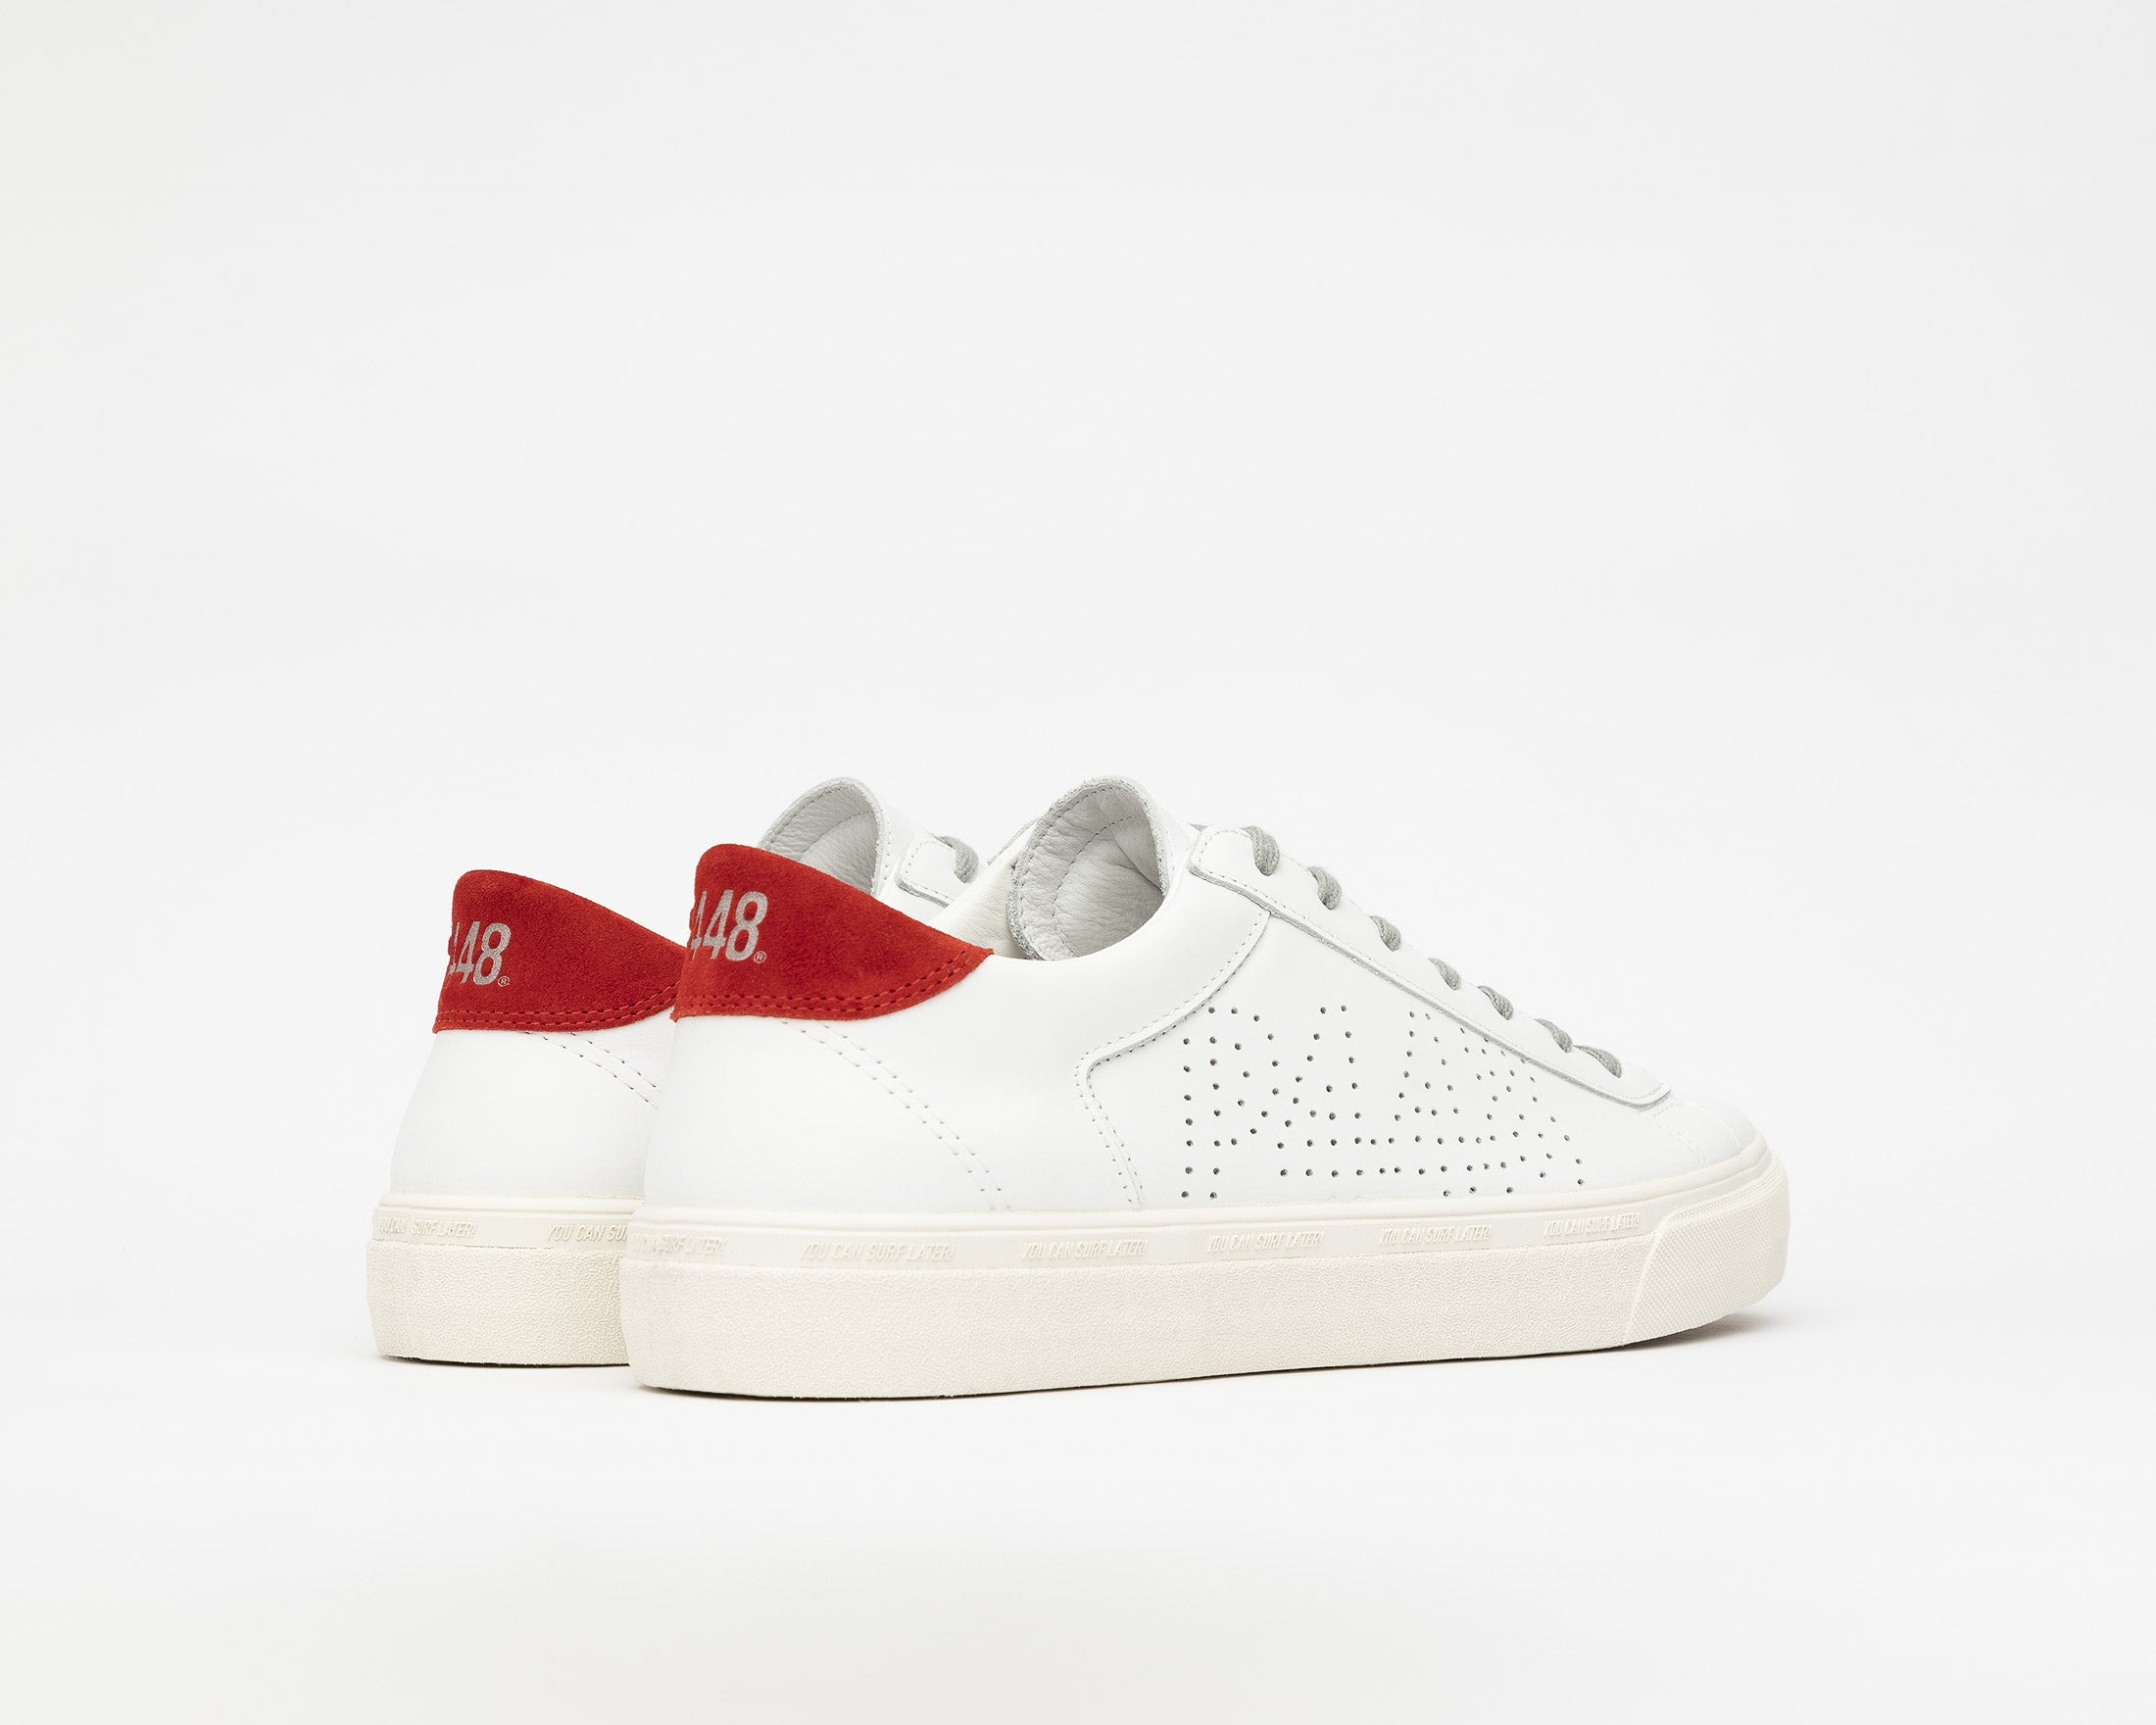 Y.C.S.L. Low-Top Volcanized Sneaker in White/Red - Back